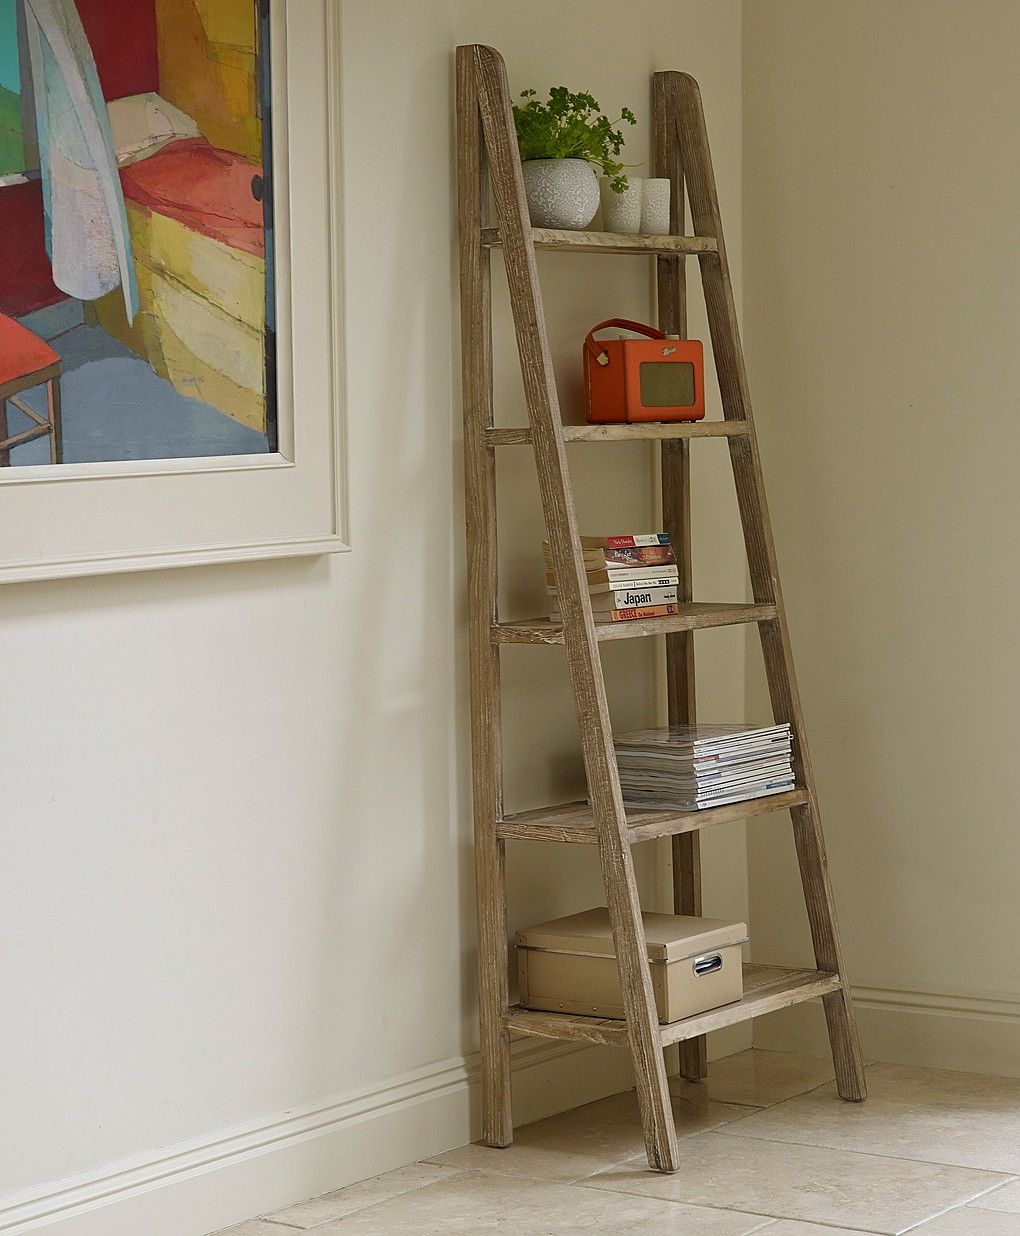 Popular Ladder Bookcase Ideas Bookcase Design Ideas 2015 Ladder Shelf Rustic Ladder Ladder Bookcase